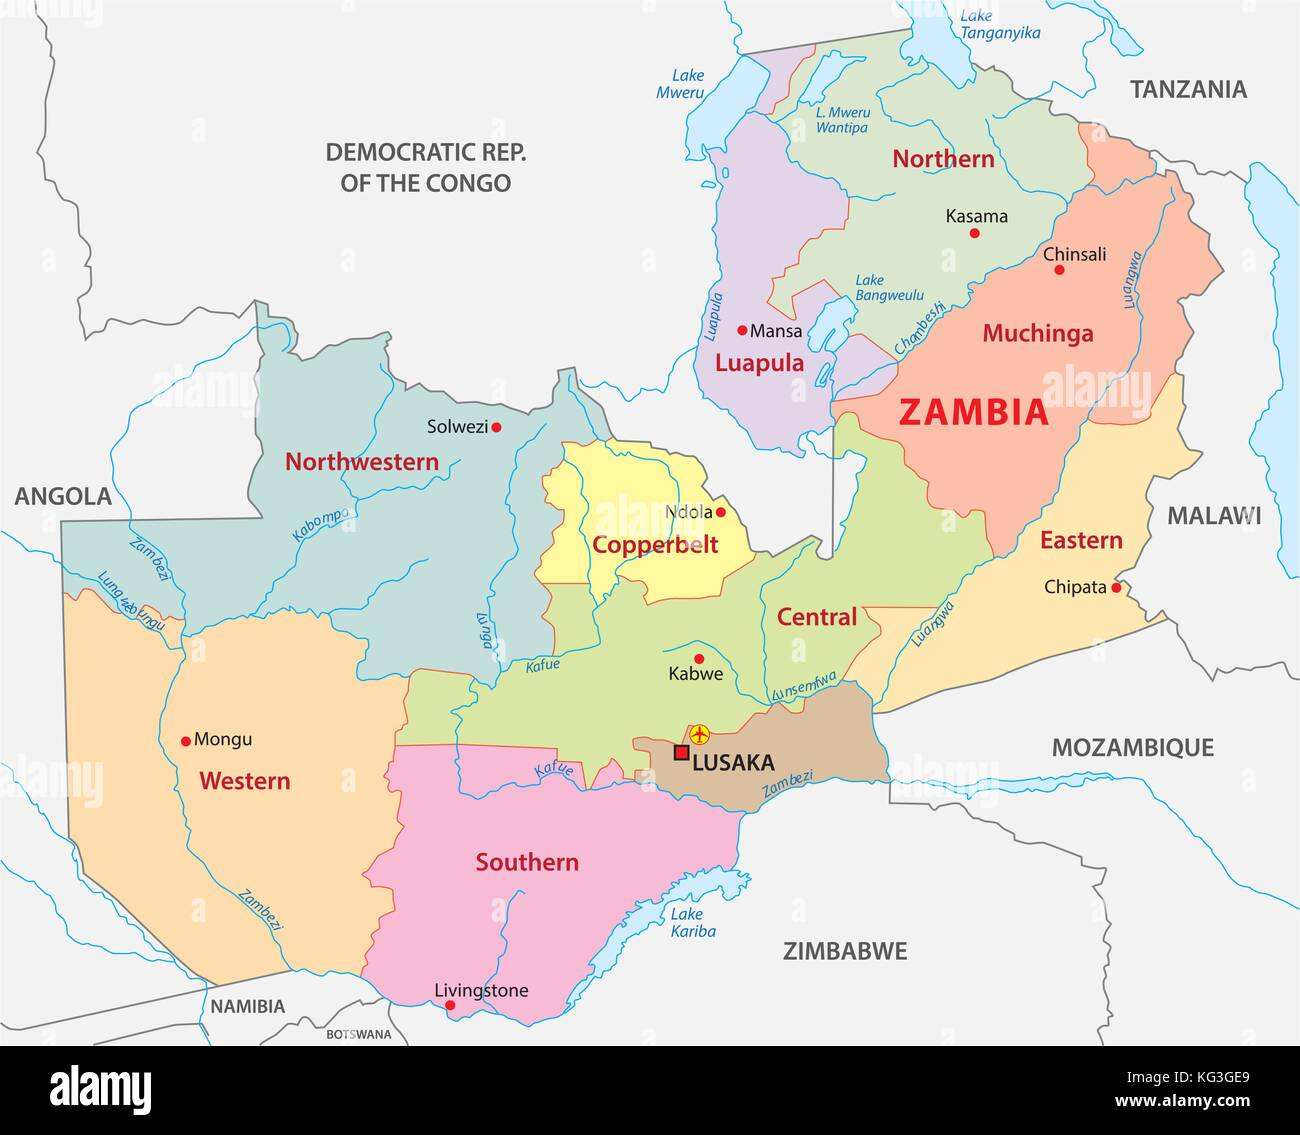 Map Africa Zambia Stock Photos & Map Africa Zambia Stock Images - Alamy